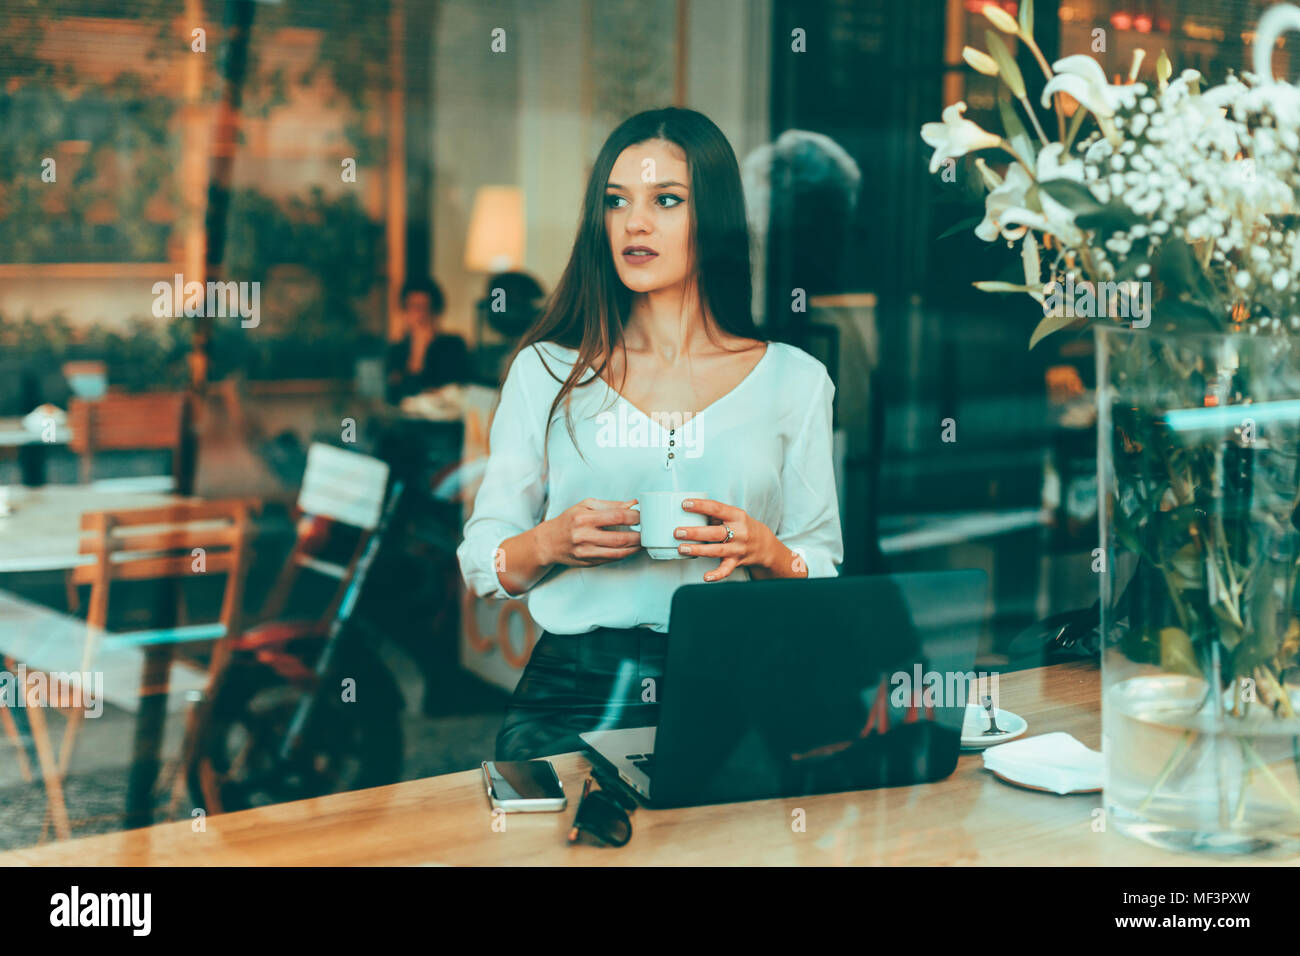 Portrait of young businesswoman waiting in a coffee shop - Stock Image